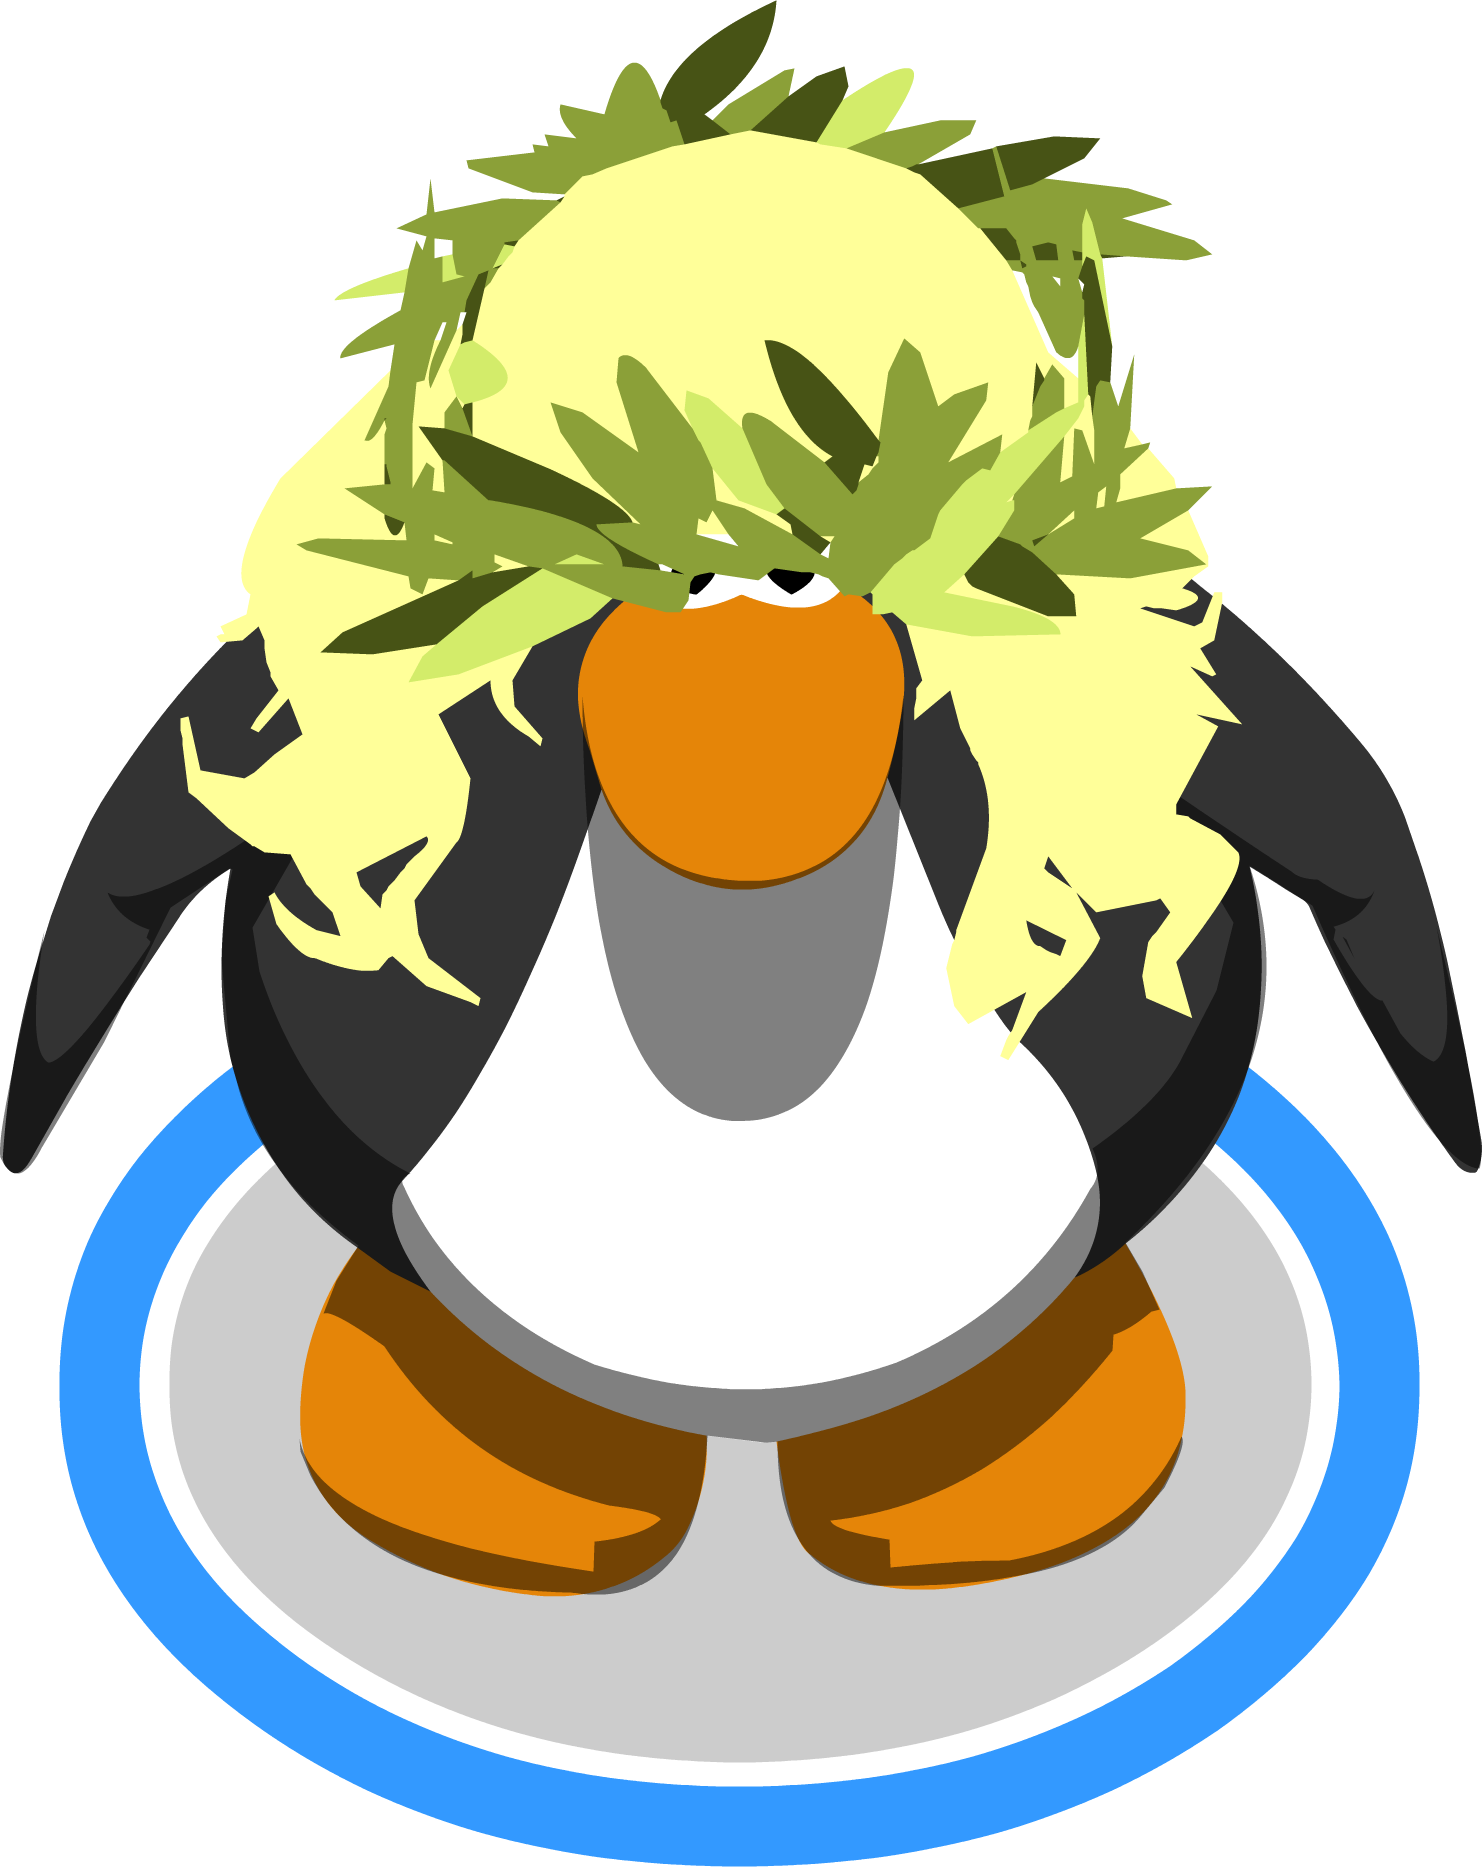 Pineapple clipart crown vector black and white download Image - The Pineapple Crown ingame.PNG | Club Penguin Wiki | FANDOM ... vector black and white download